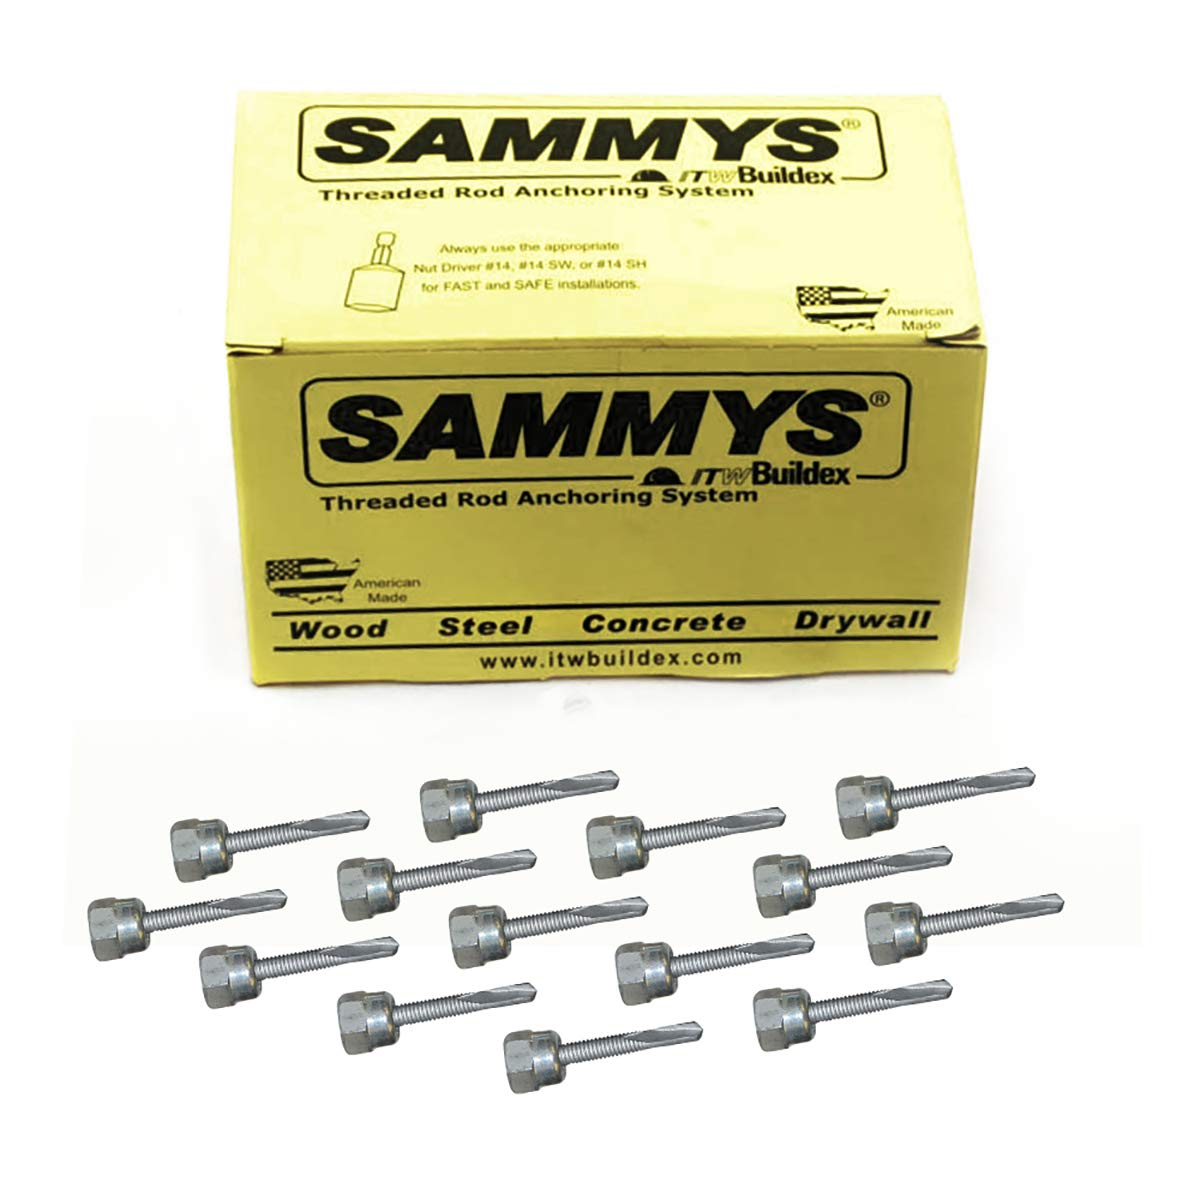 Sammys 8024957-25 Vertical Anchor Super Screw with 1/4 in. Threaded Rod Fitting, 20 x 1, for for Steel 25 Pack, Piece by Sammys